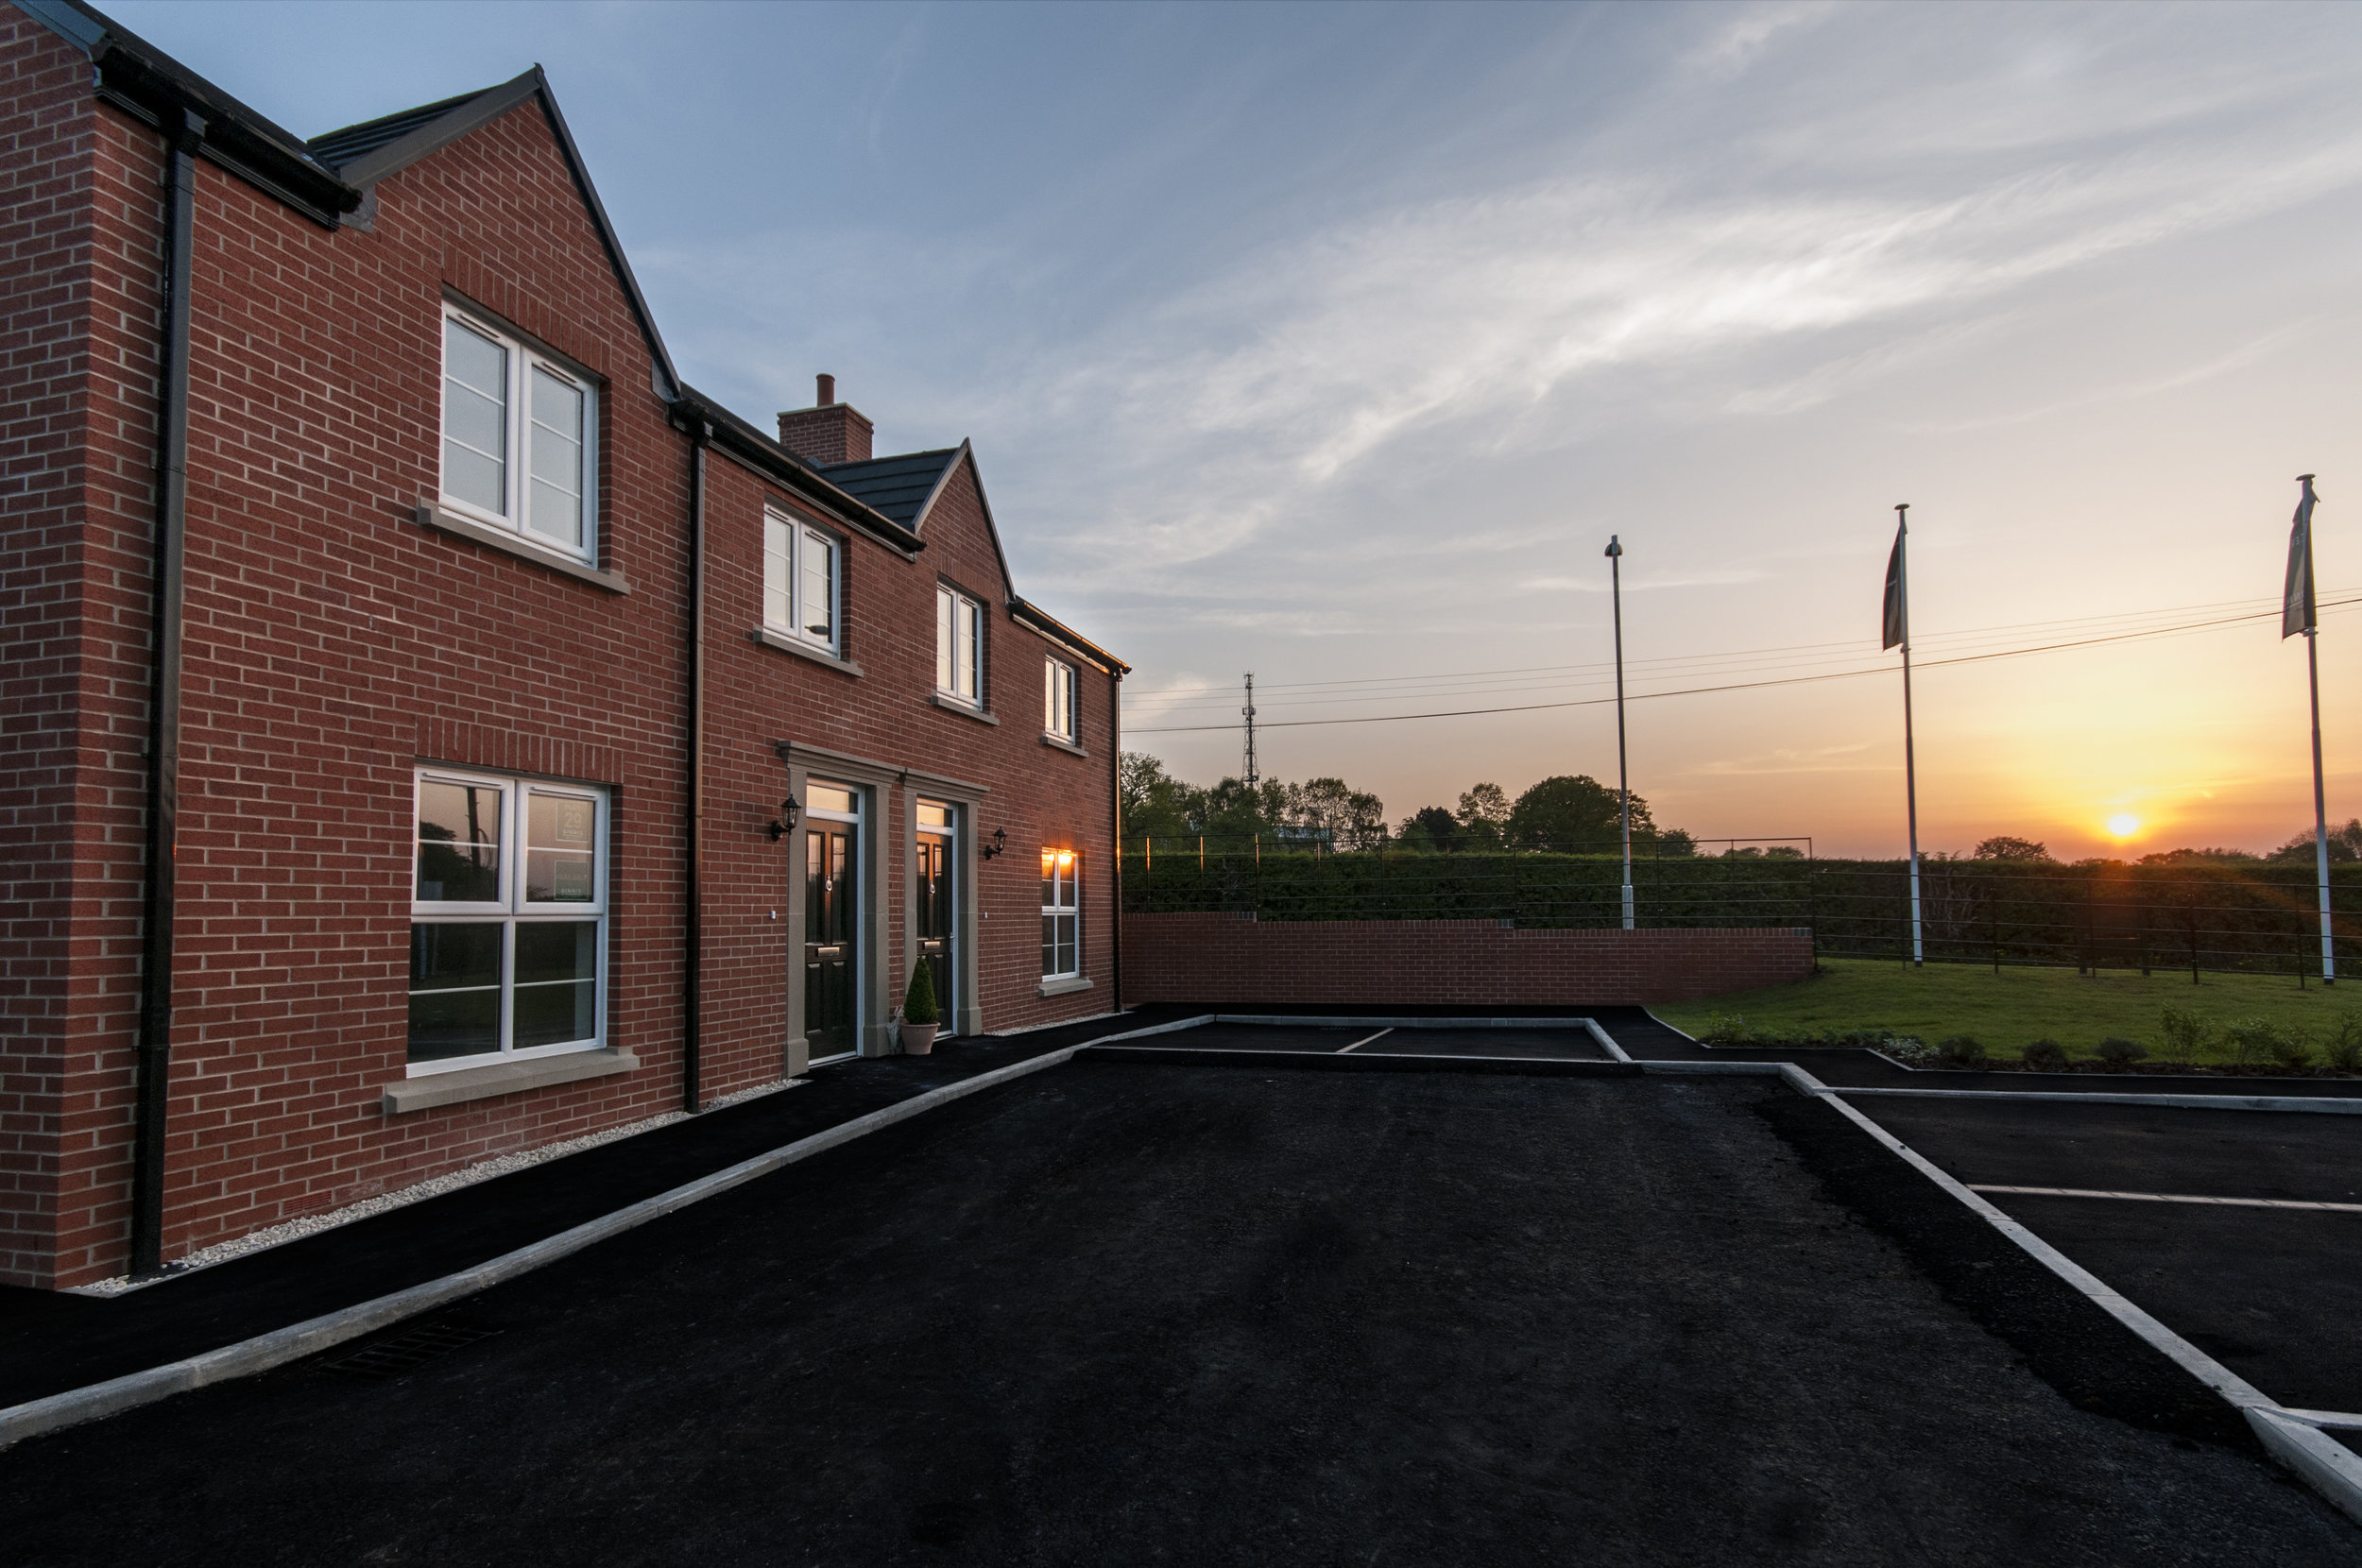 Deer Park boasta a range of three and four-bedroom homes with access via a private road.